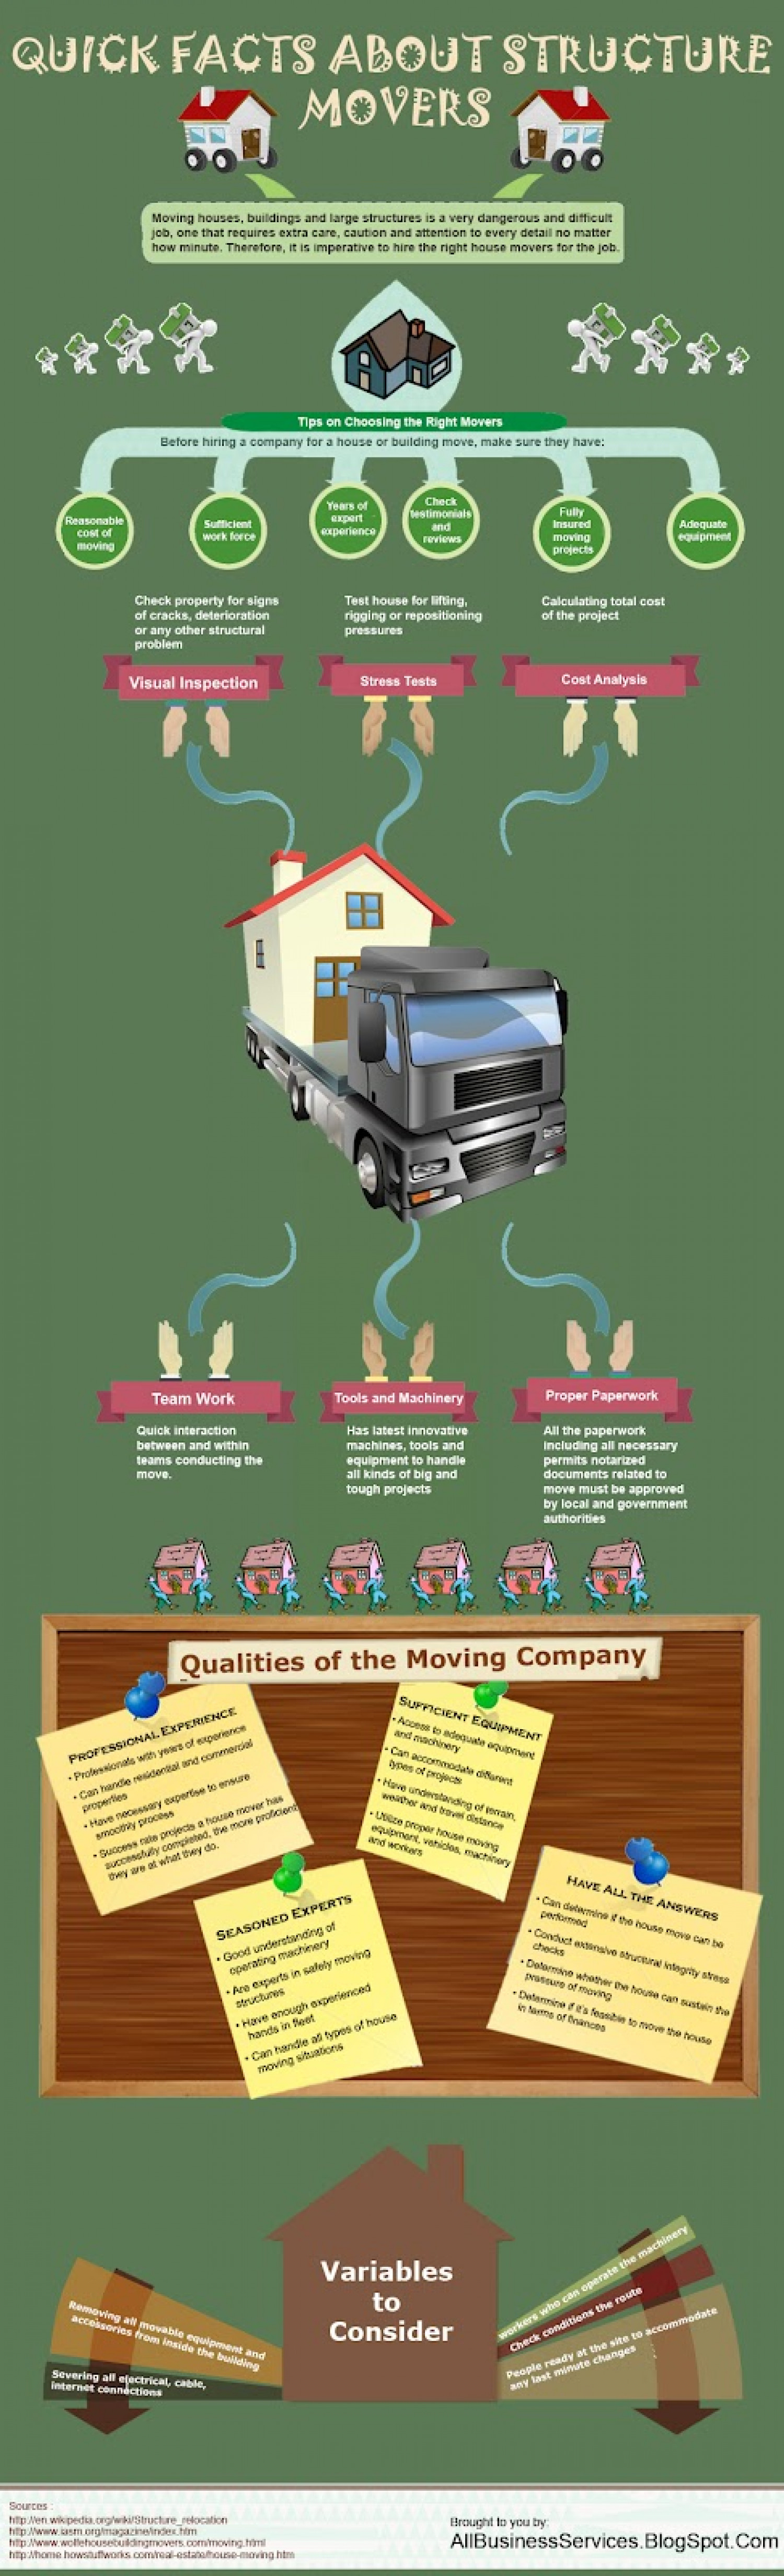 Quick Facts about Structure Movers [Infographic]  Infographic